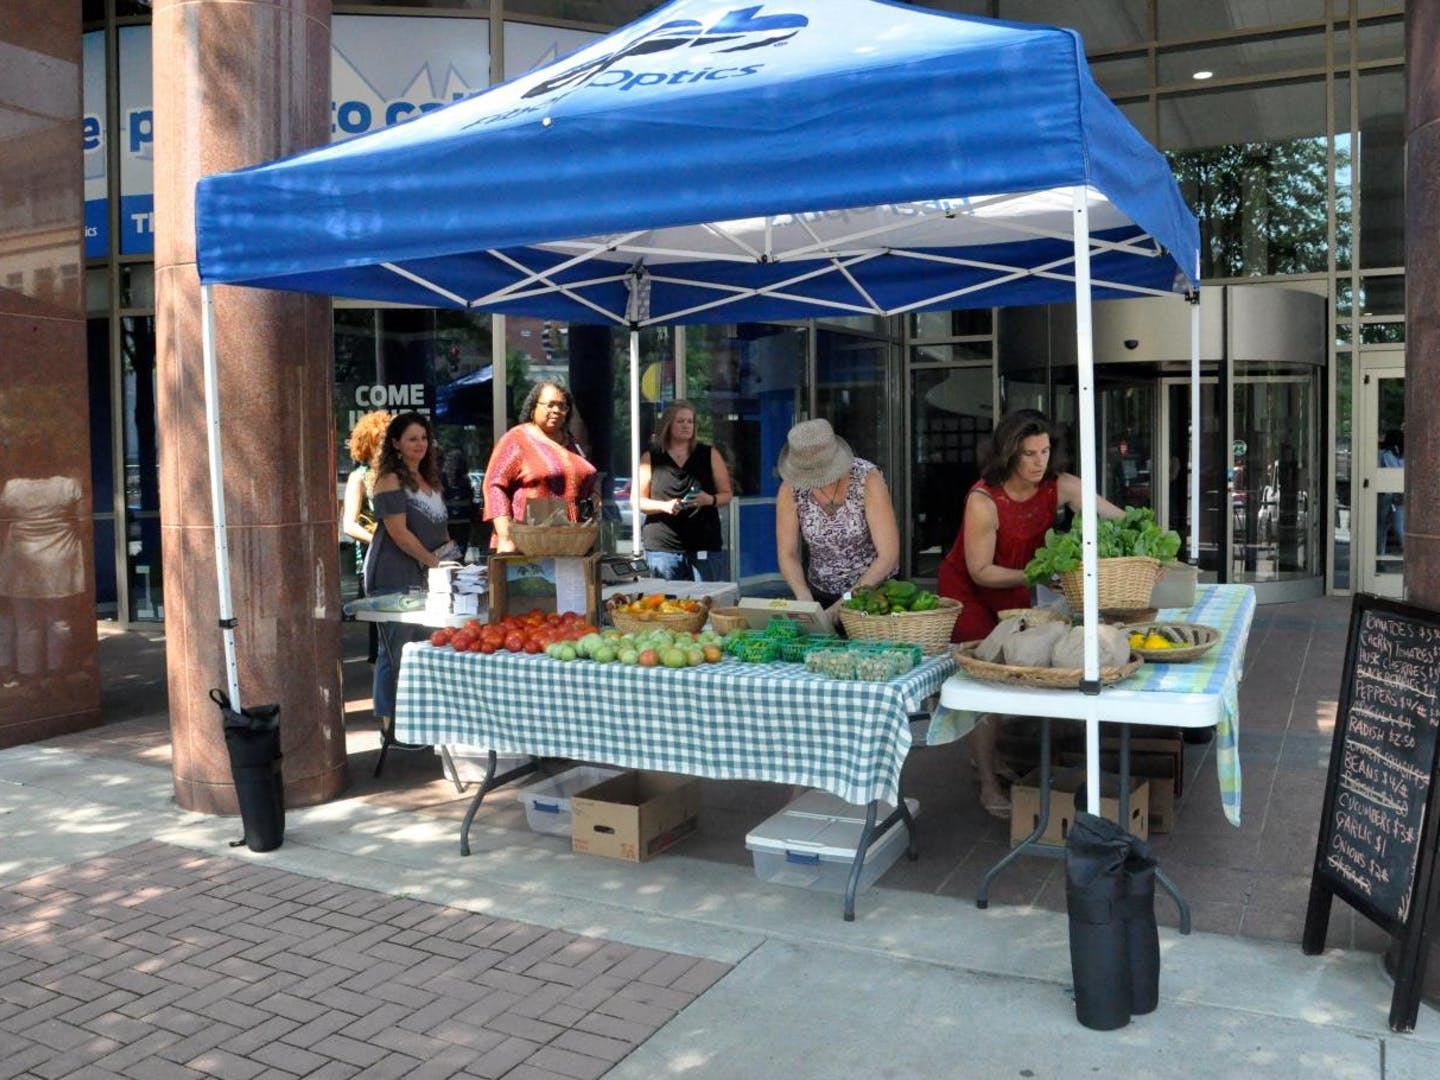 epb-and-crabtree-farms-sprout-downtown-pop-up-farm-stand.jpeg